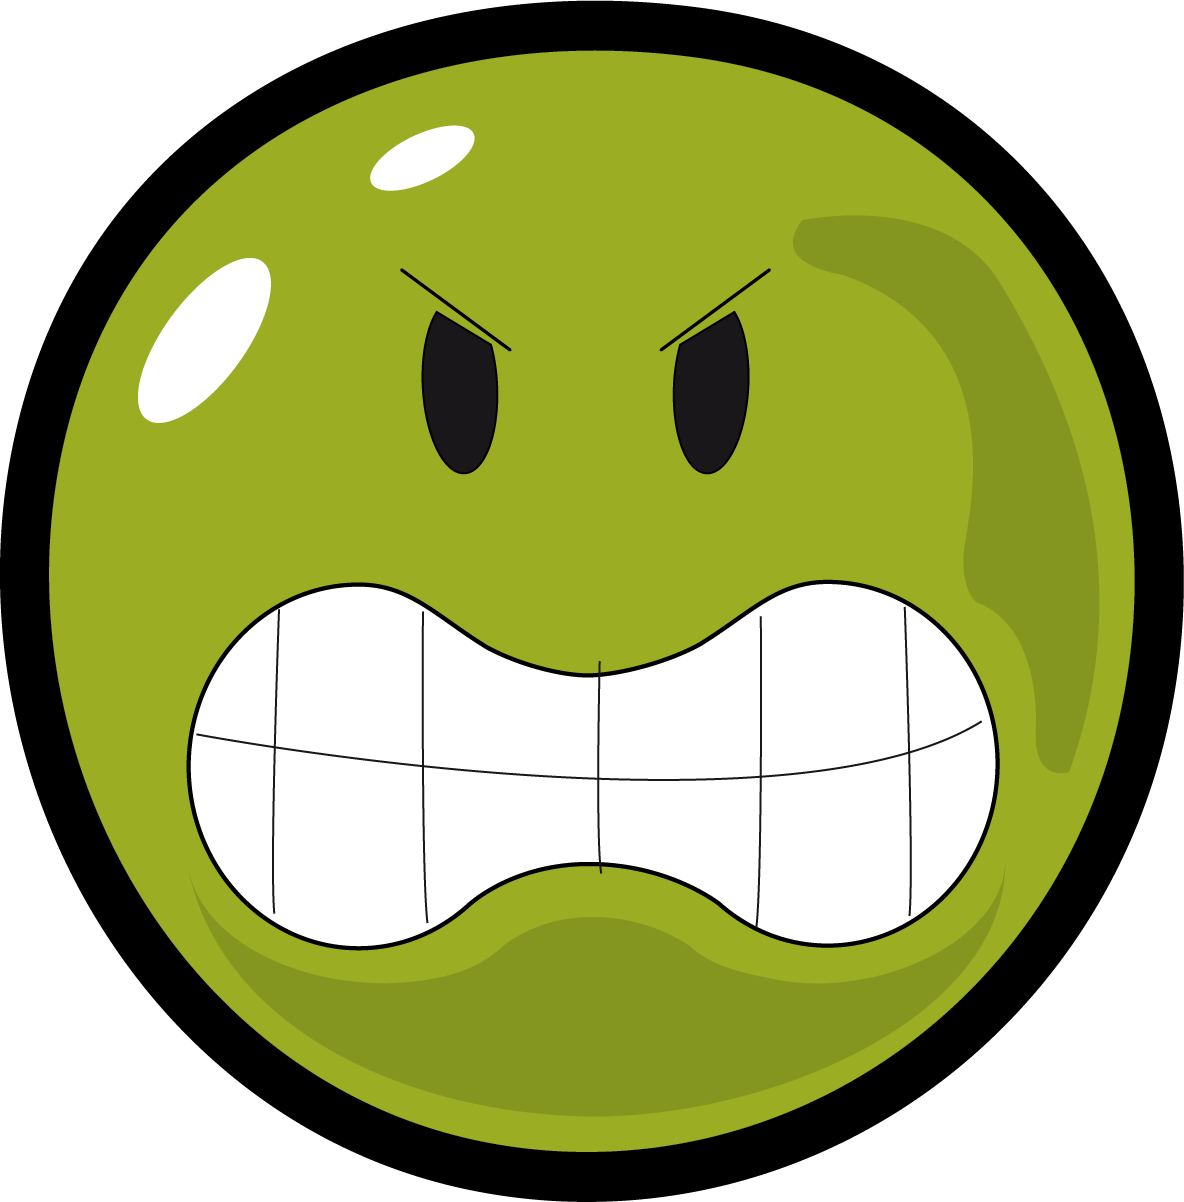 1184x1202 Angry Face Smiley Clipart